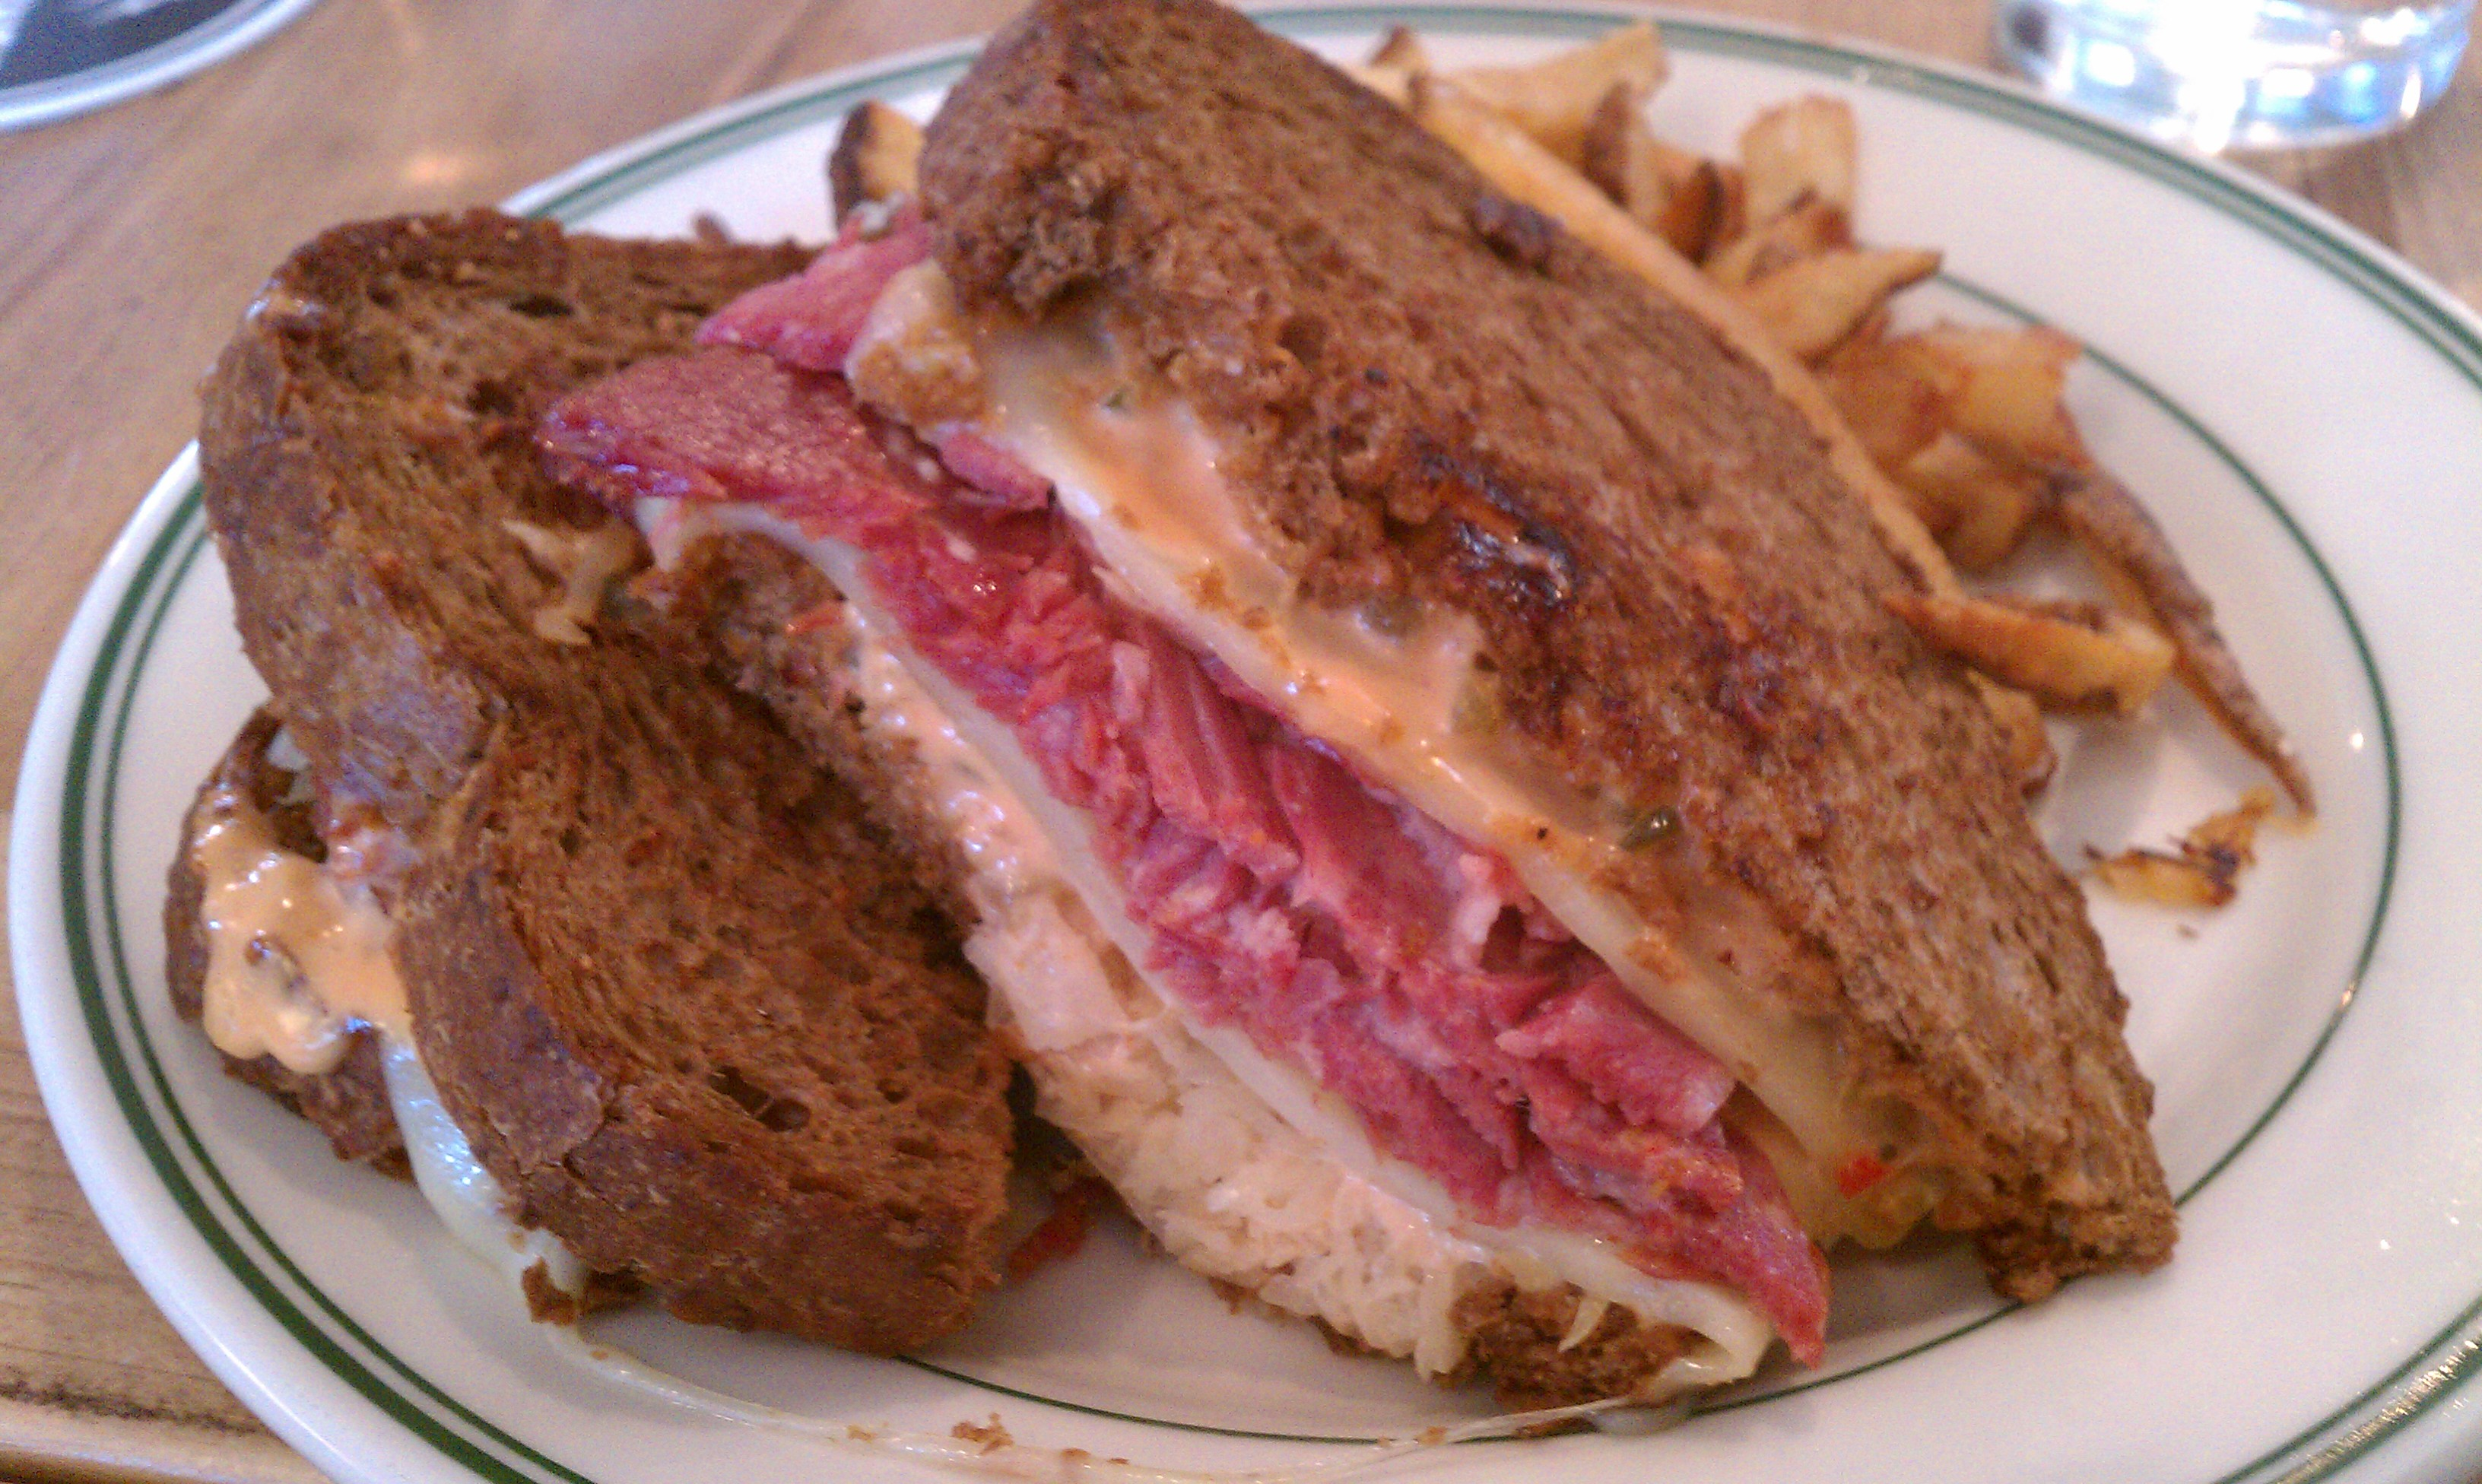 Next I Ordered The Ward 6 Reuben Made With House Cured Corned Beef Sauerkraut Swiss Cheese And Their Take On Thousand Island Which They Call 10 000 Lake